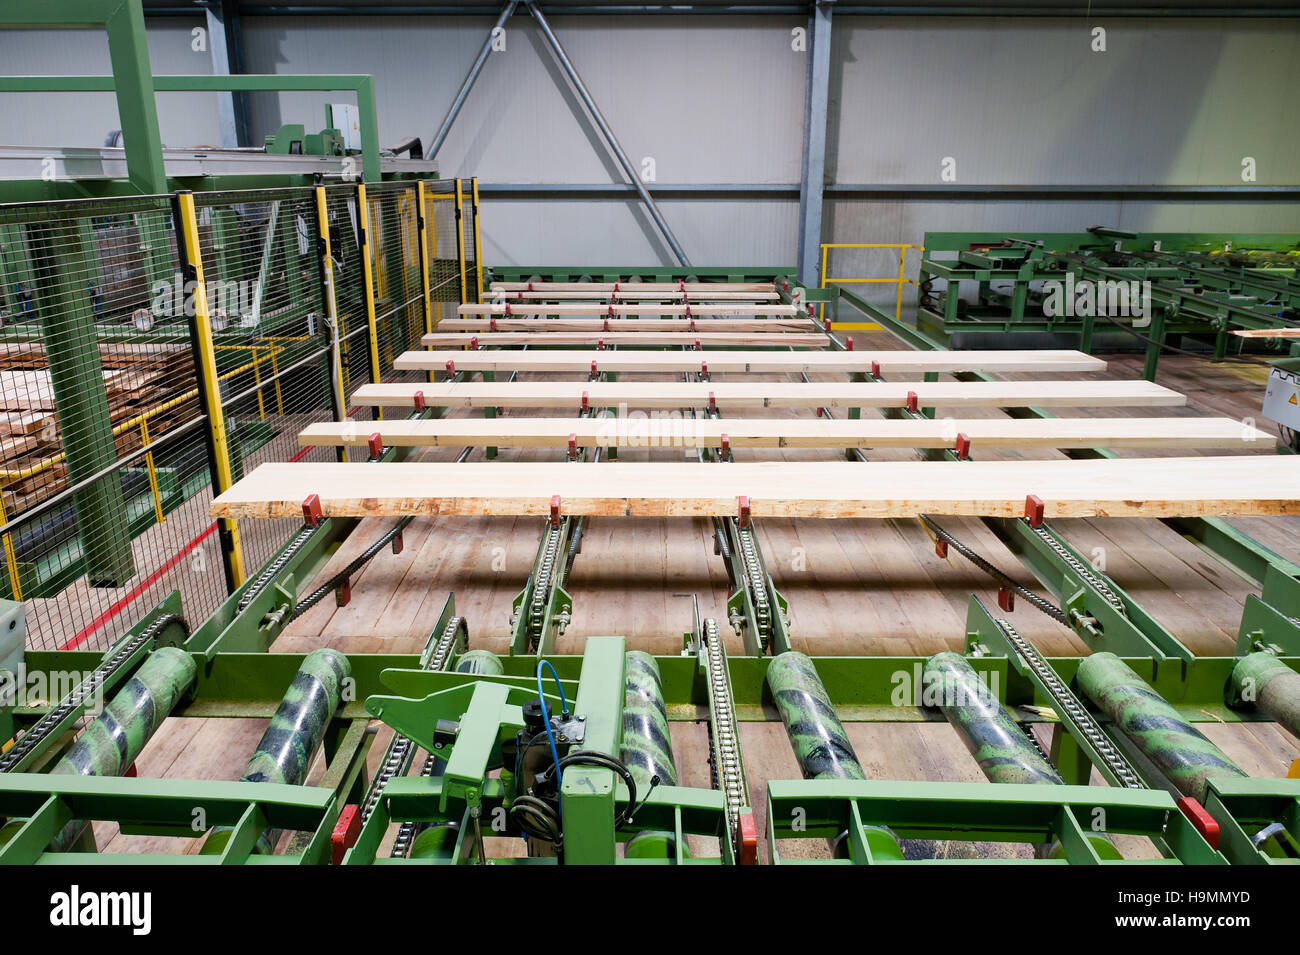 Wooden planks on machinery in timber processing plant, Templin, Uckermark district of Brandenurg, Germany. - Stock Image